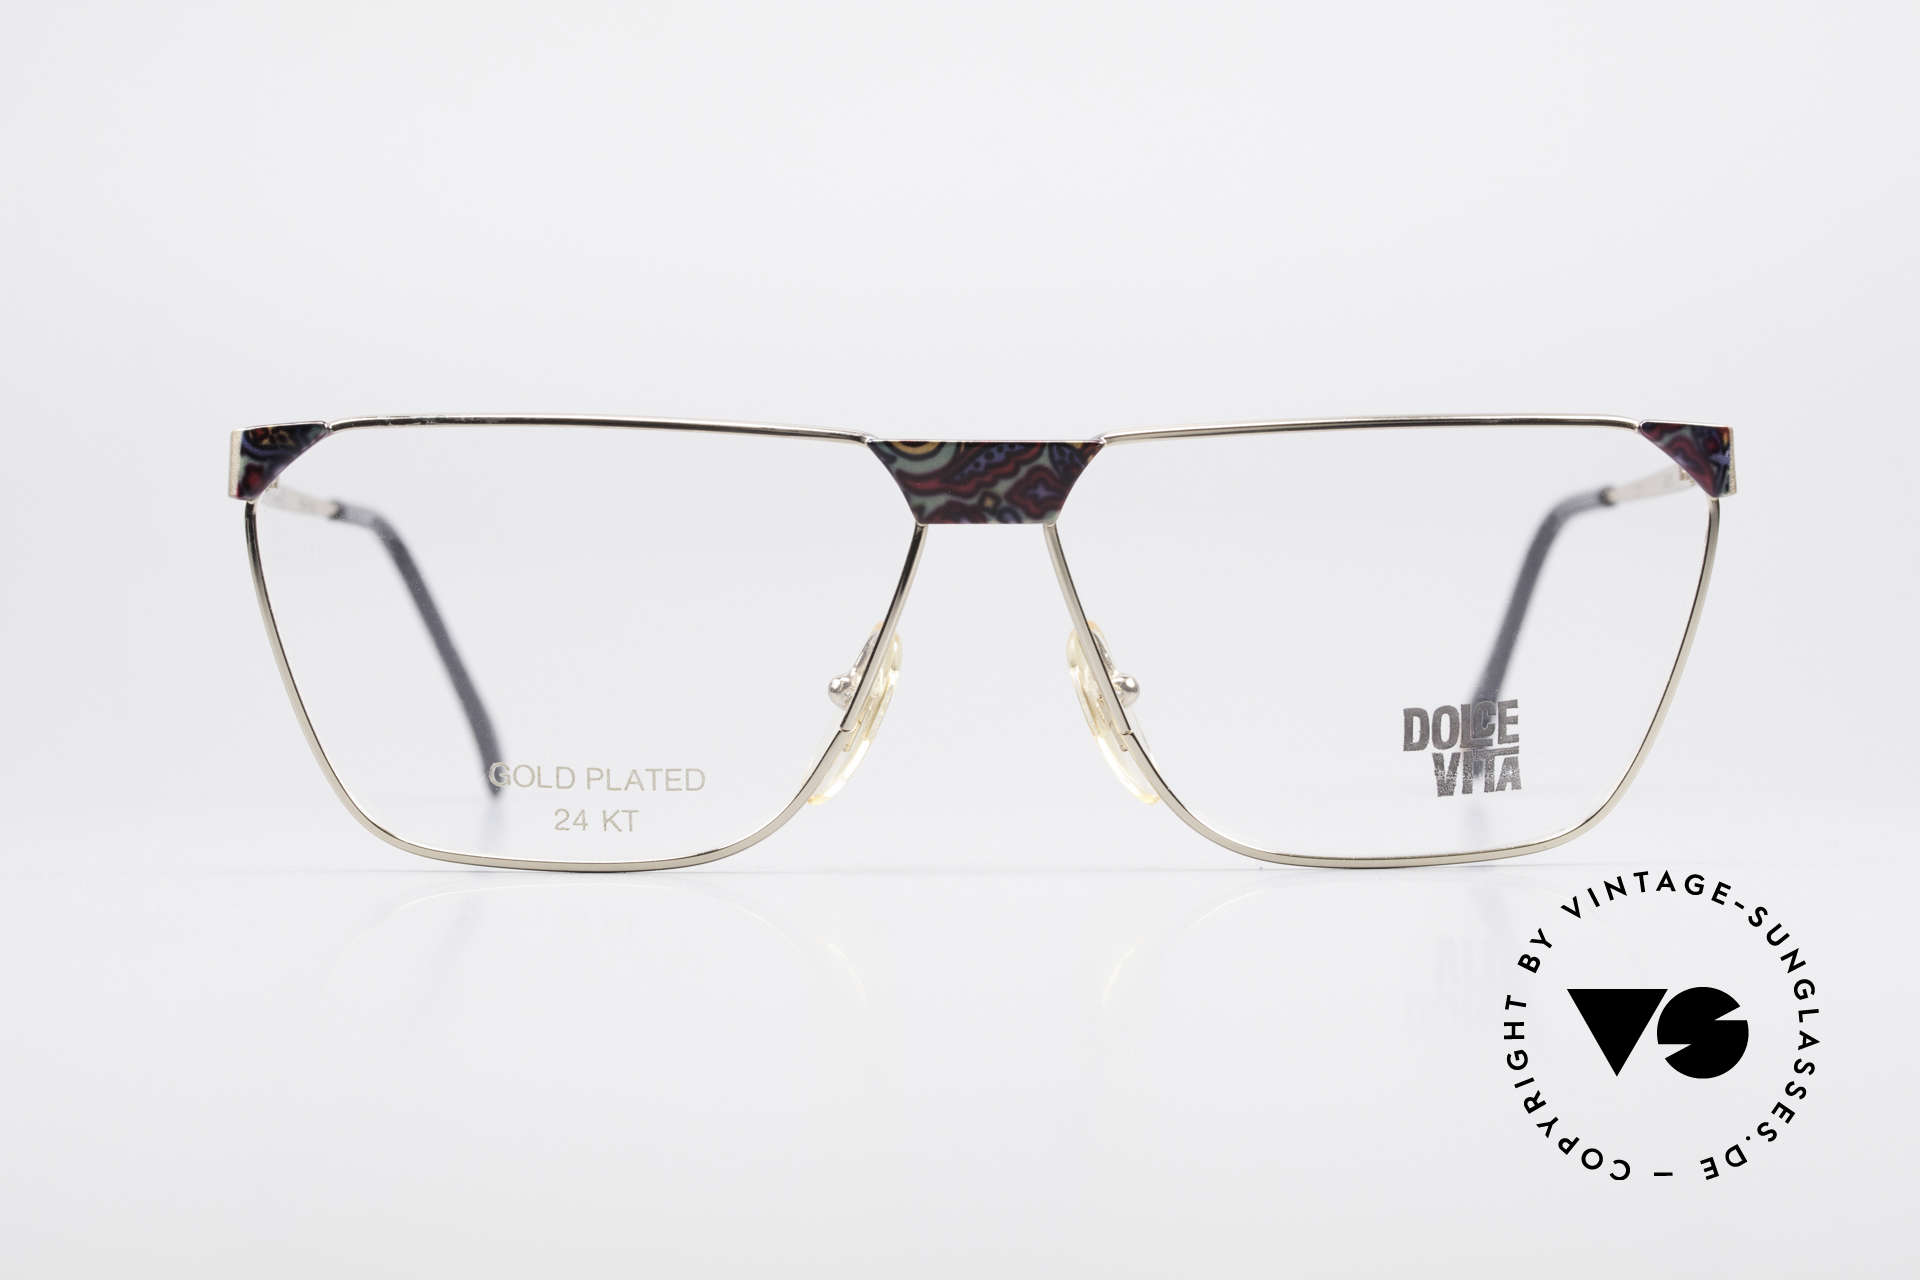 Casanova NM22 Dolce Vita 24kt Eyeglasses, gold-plated frame (a matter of course, at that time), Made for Men and Women